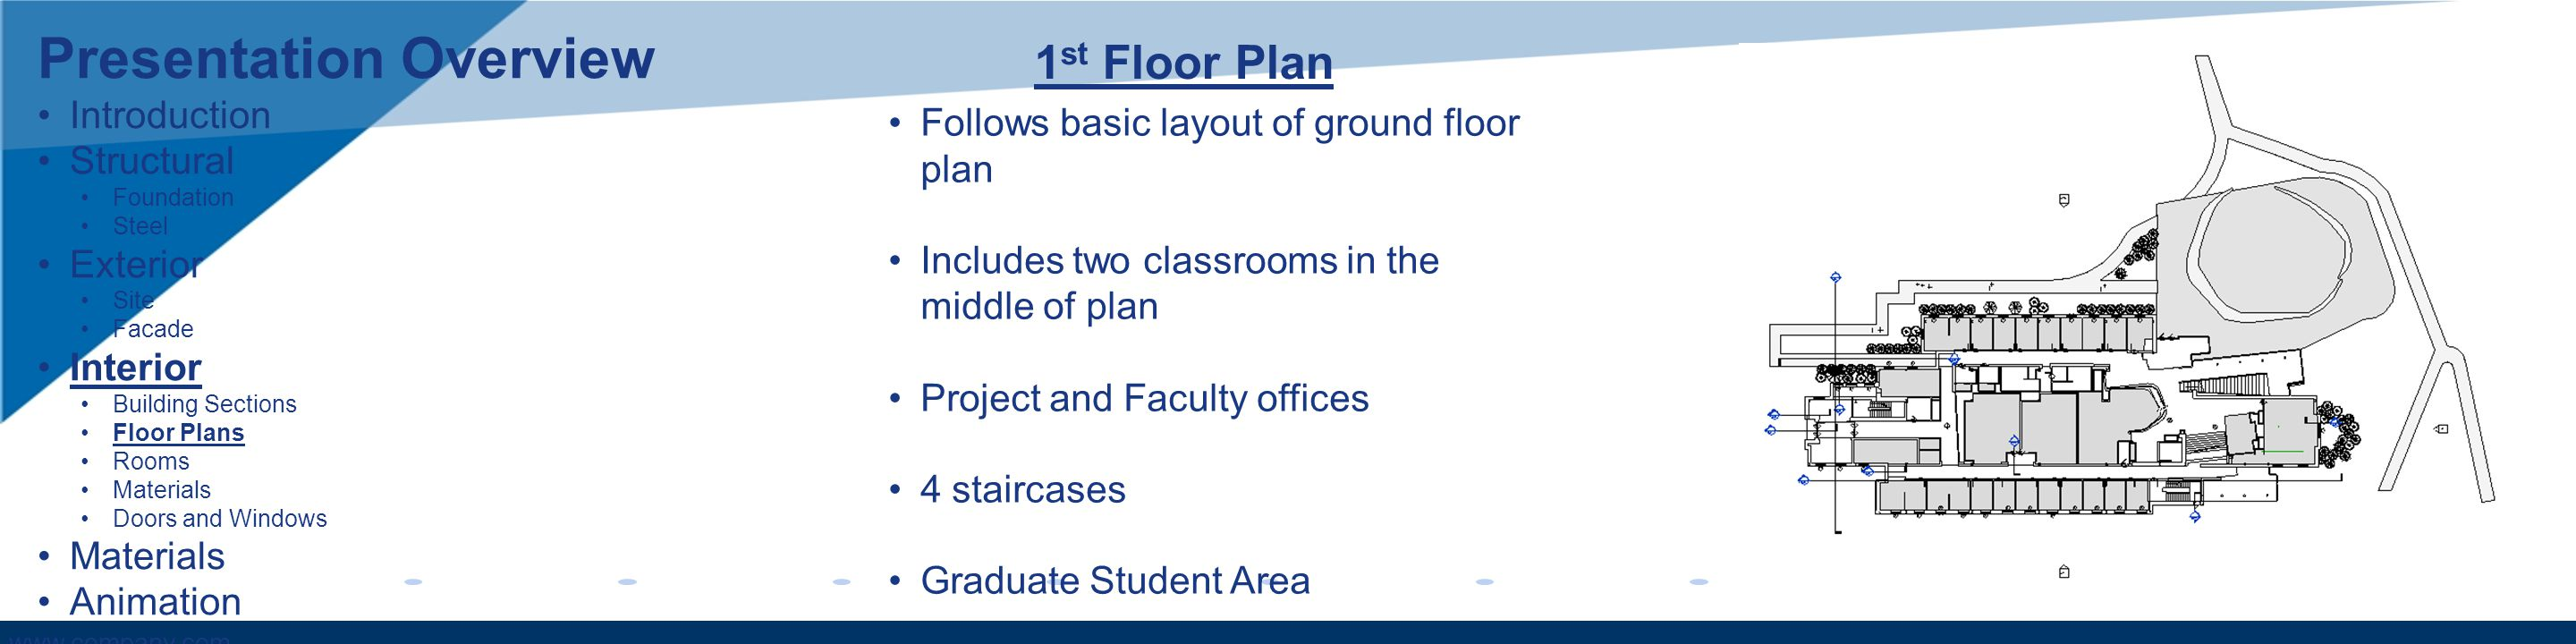 www.company.com Follows basic layout of ground floor plan Includes two classrooms in the middle of plan Project and Faculty offices 4 staircases Graduate Student Area 1 st Floor Plan Presentation Overview Introduction Structural Foundation Steel Exterior Site Facade Interior Building Sections Floor Plans Rooms Materials Doors and Windows Materials Animation